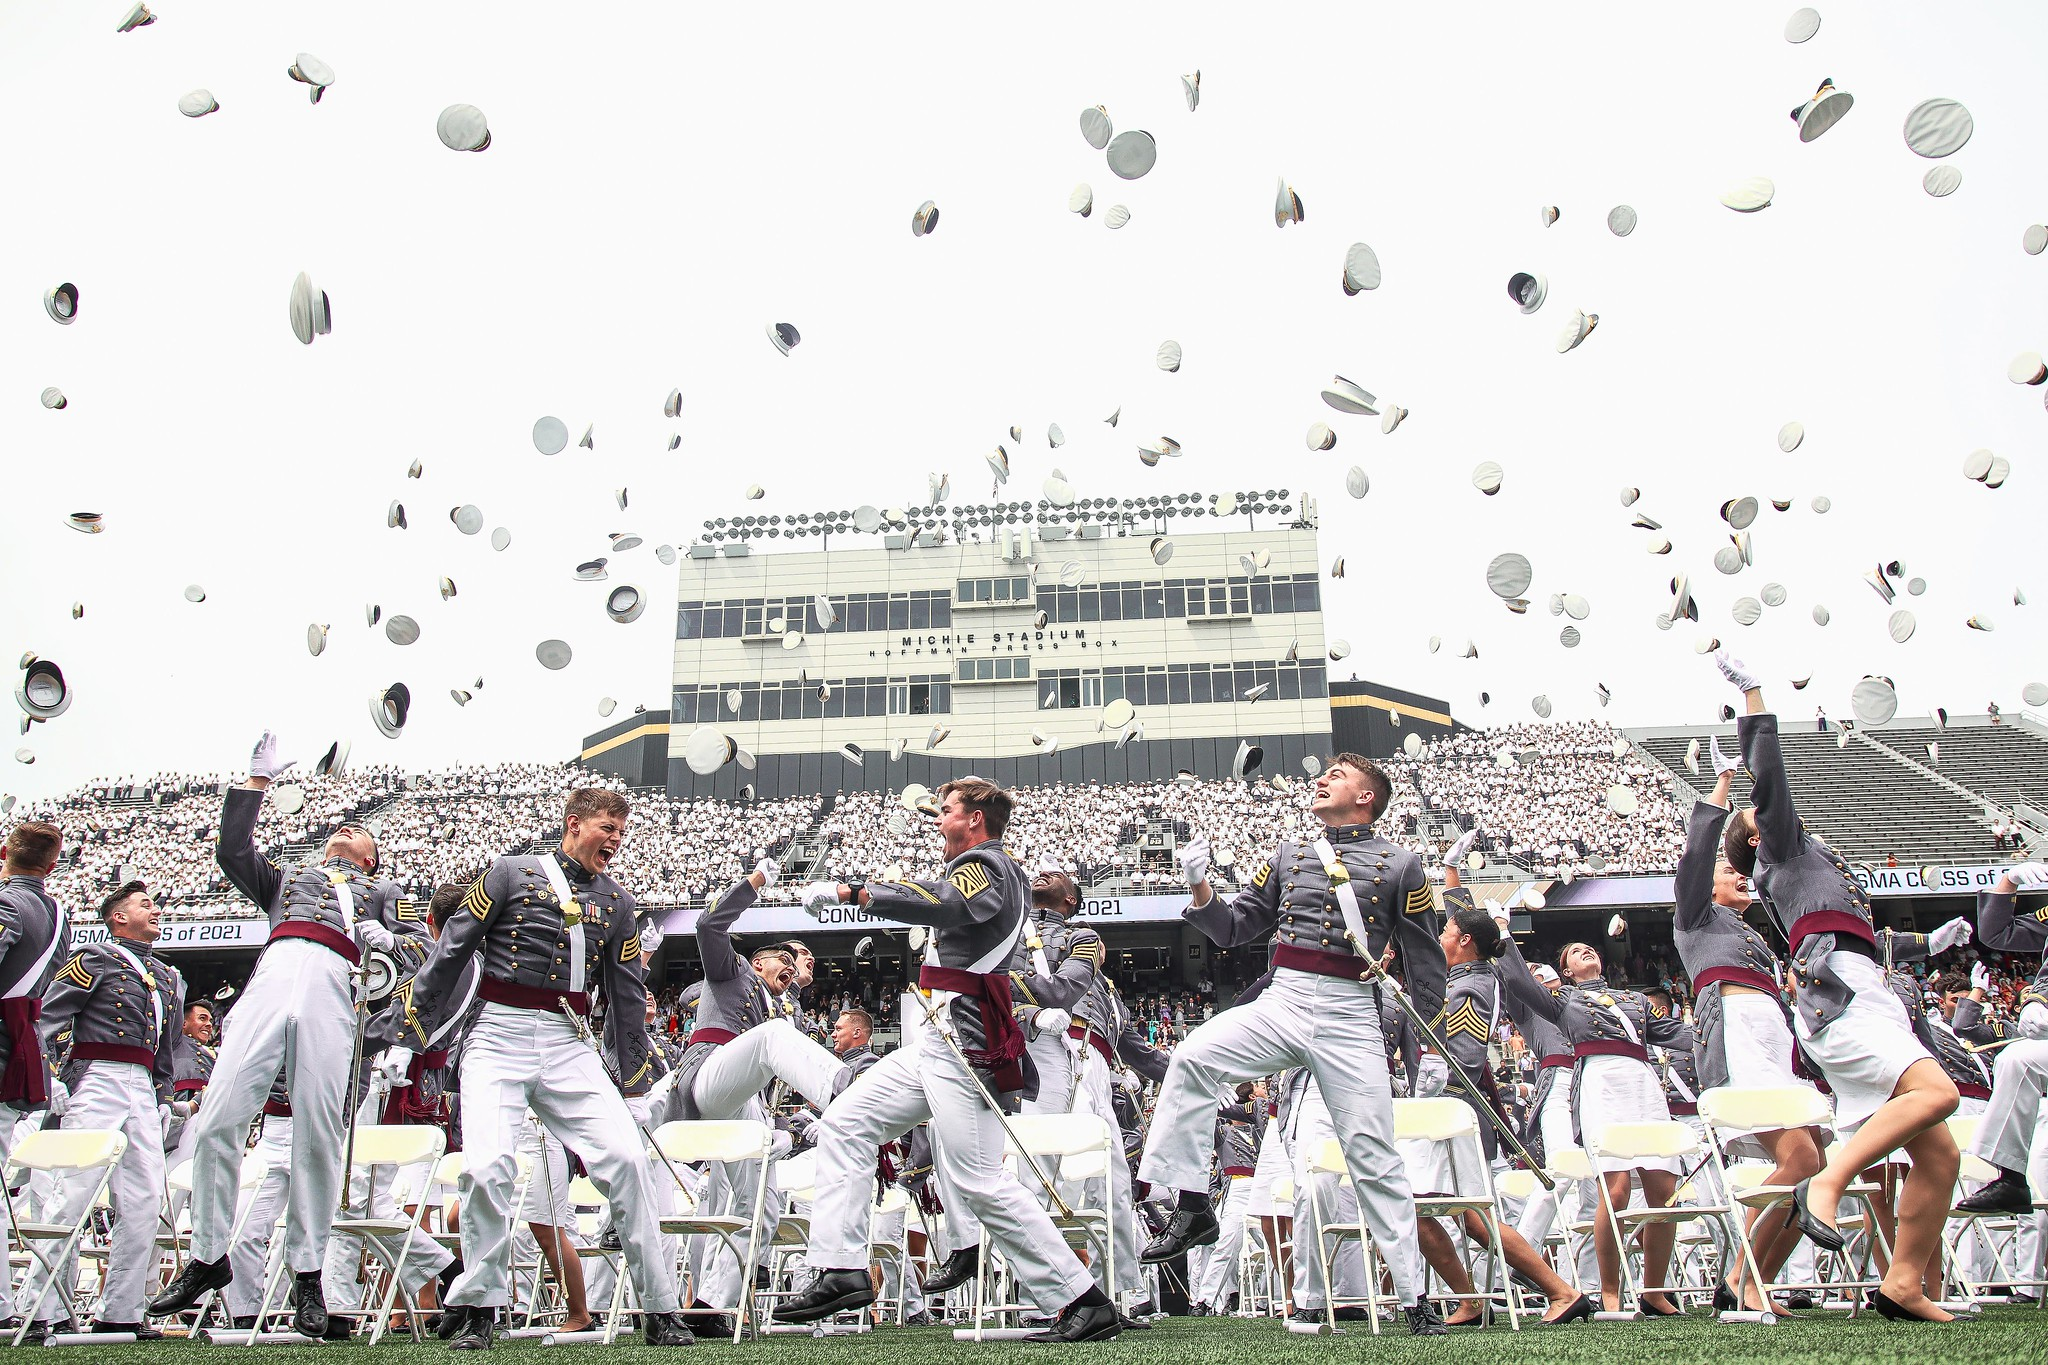 The U.S. Military Academy at West Point held its graduation and commissioning ceremony for the Class of 2021 at Michie Stadium in West Point, N.Y., May 22, 2021. This year, 995 cadets graduated. (Cadet Hannah Lamb/Army)